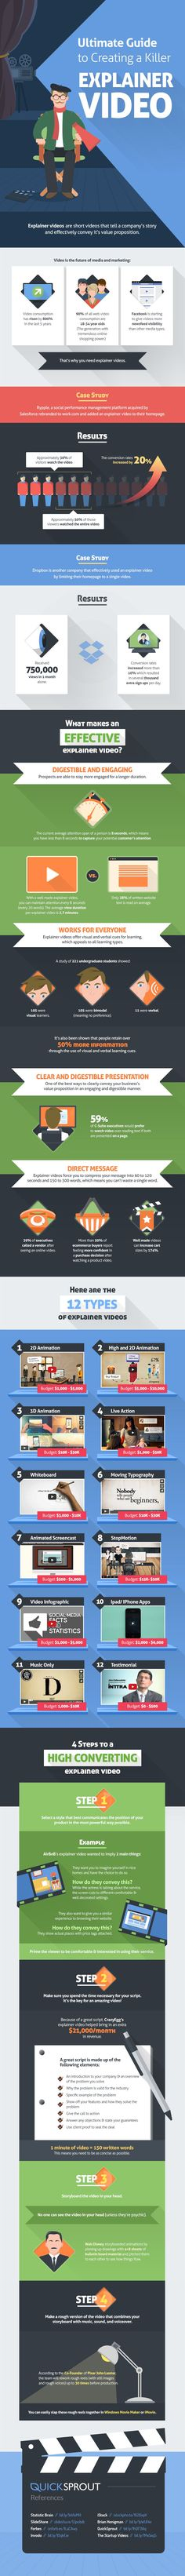 The Ultimate Guide to Creating a Killer Explainer #Video - Feb 27, 2015